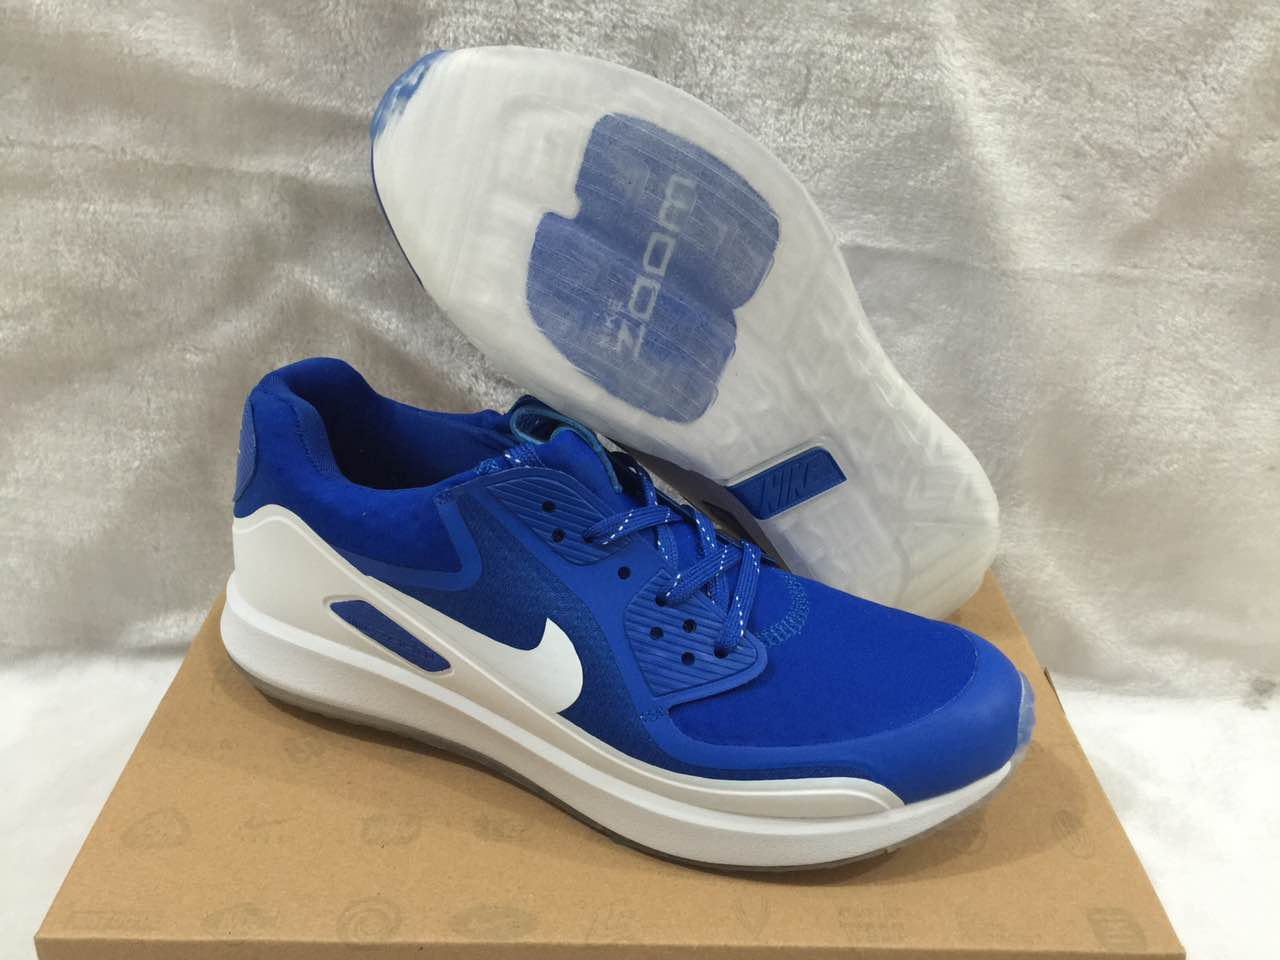 Nike Zoom 90 IT Blue White Shoes